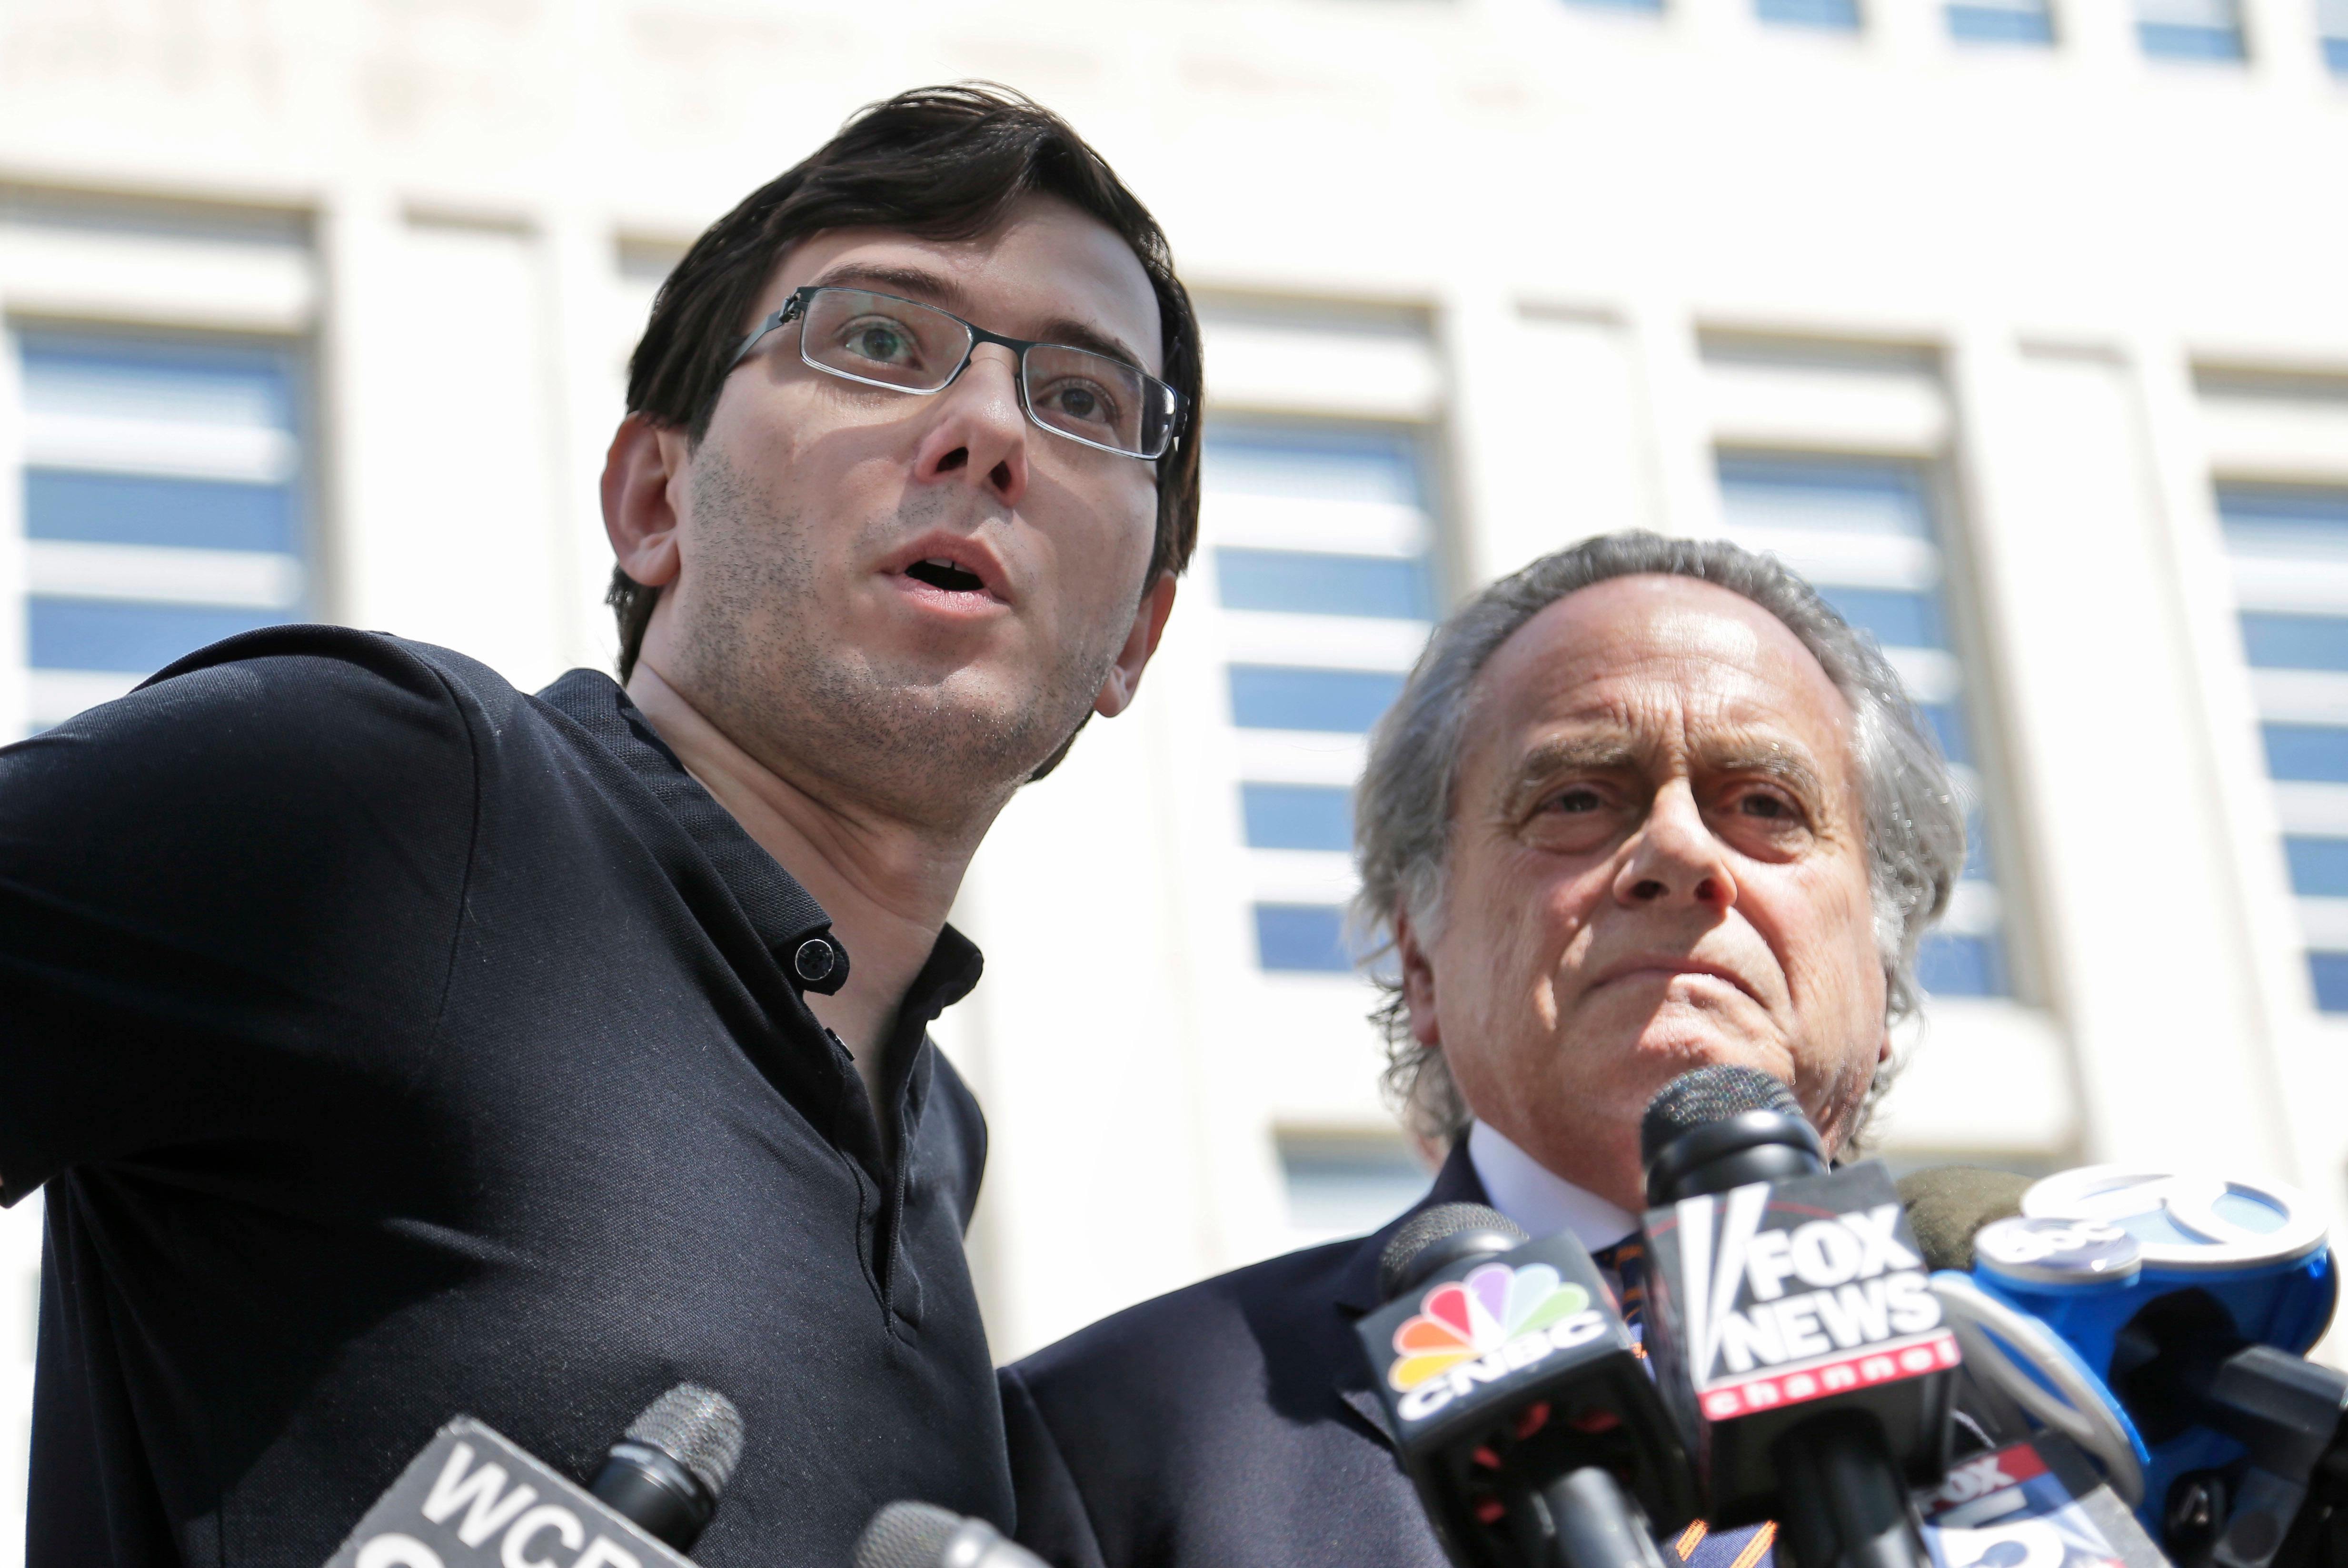 Martin Shkreli, left, talks with reporters while standing next to his attorney Benjamin Brafman after leaving federal court in New York, Friday, Aug. 4, 2017. The former pharmaceutical CEO has been convicted on federal charges he deceived investors in a pair of failed hedge funds. A Brooklyn jury deliberated five days before finding Shkreli guilty on Friday on three of eight counts. (AP Photo/Seth Wenig)